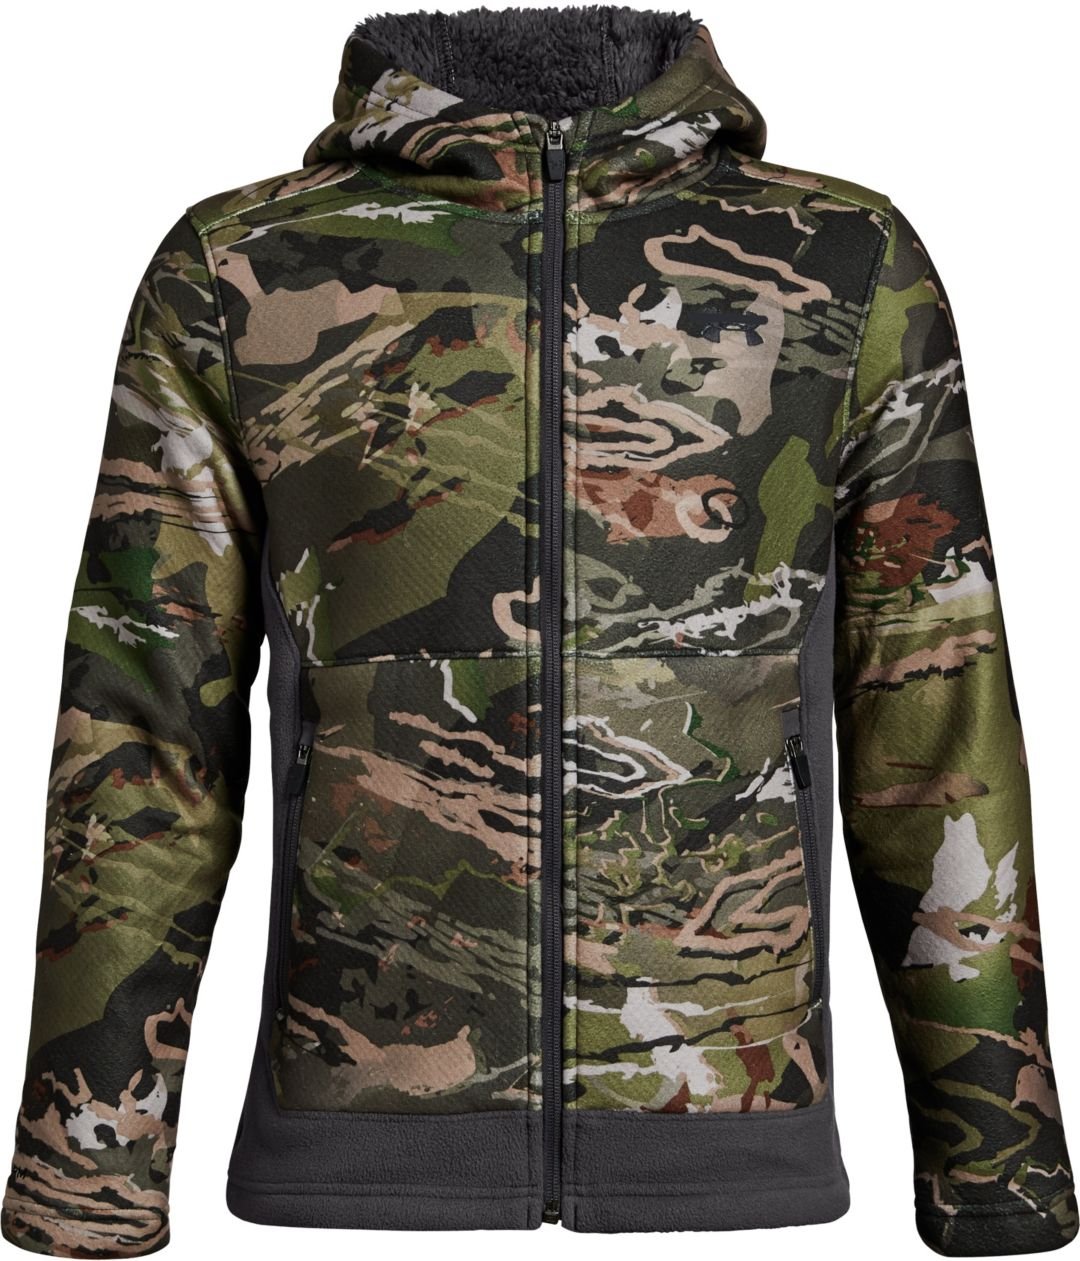 finest selection 9c49c 41a14 Under Armour Youth Stealth Fleece Hunting Jacket 1